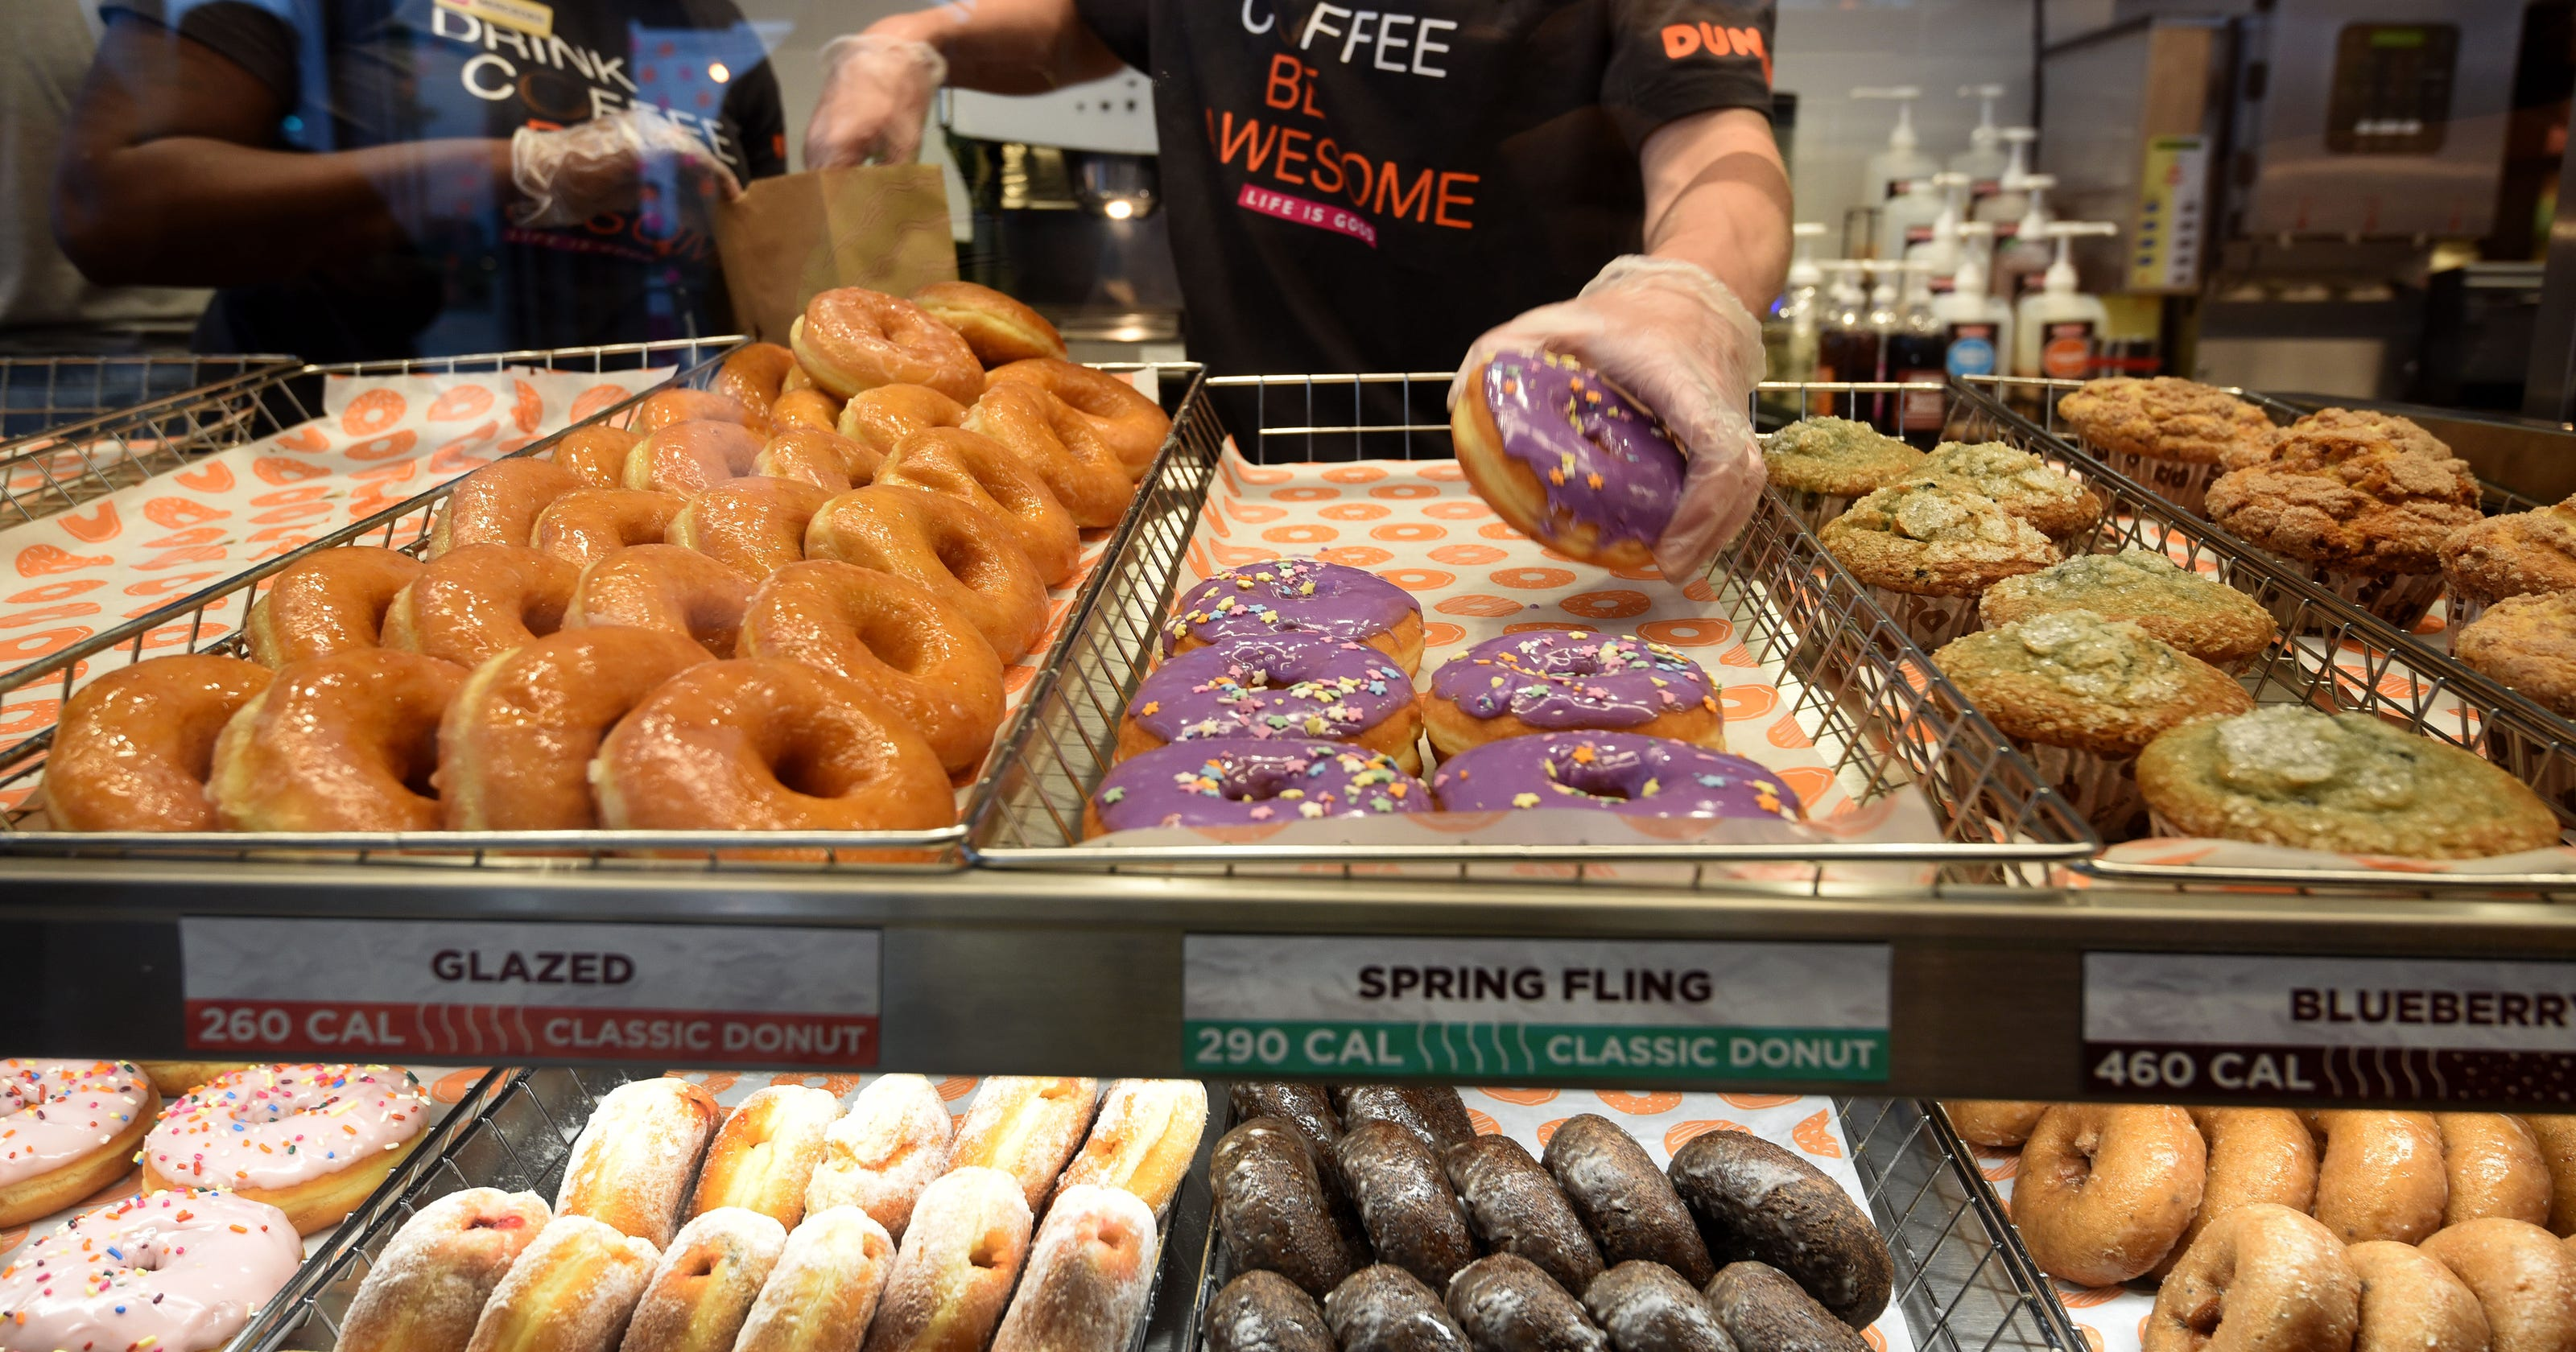 e9abcbda4bf Dunkin' Donuts 'store of the future' comes to Knoxville location